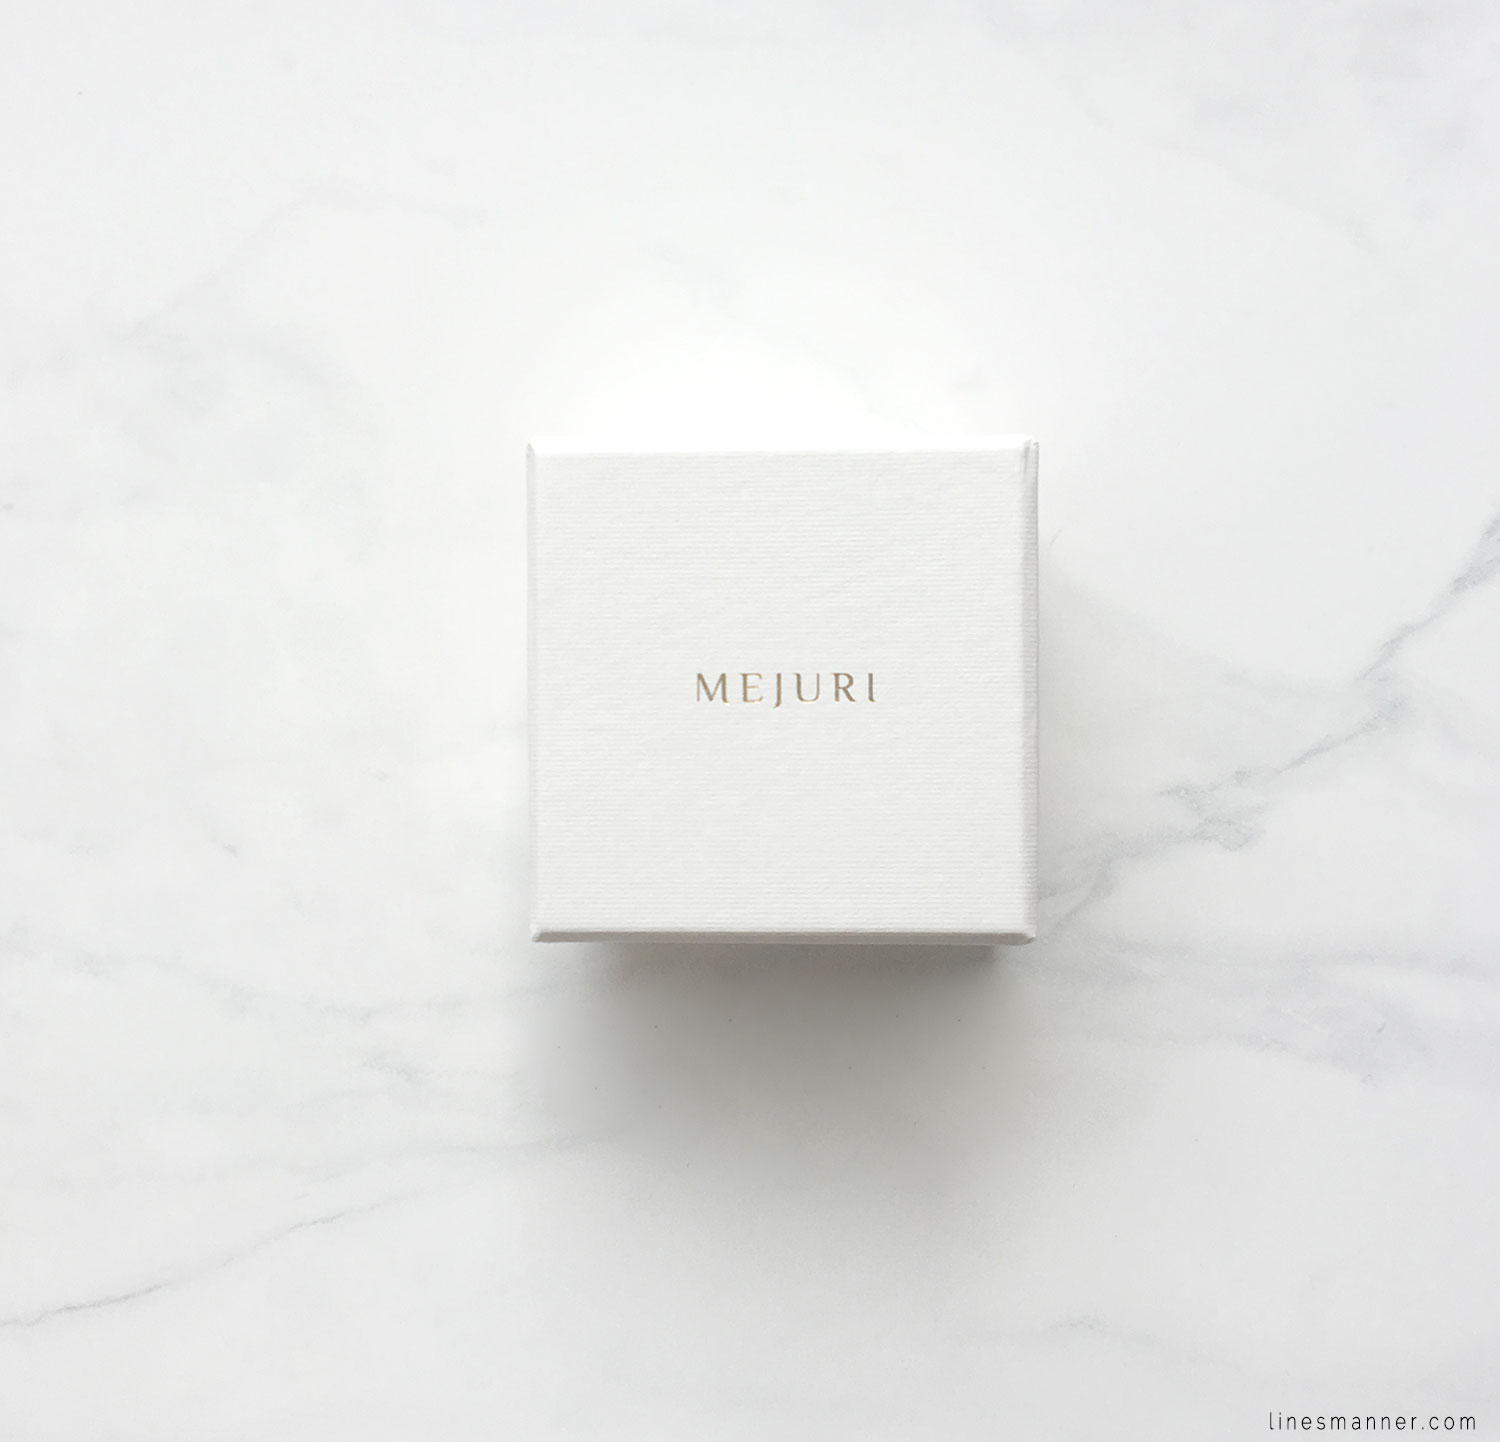 Lines-Manner-Details-Mejuri-Marble-Essentials-Minimal-Jewellery-Silver-Ring-Delicate-Monochrome-Simplicity-2